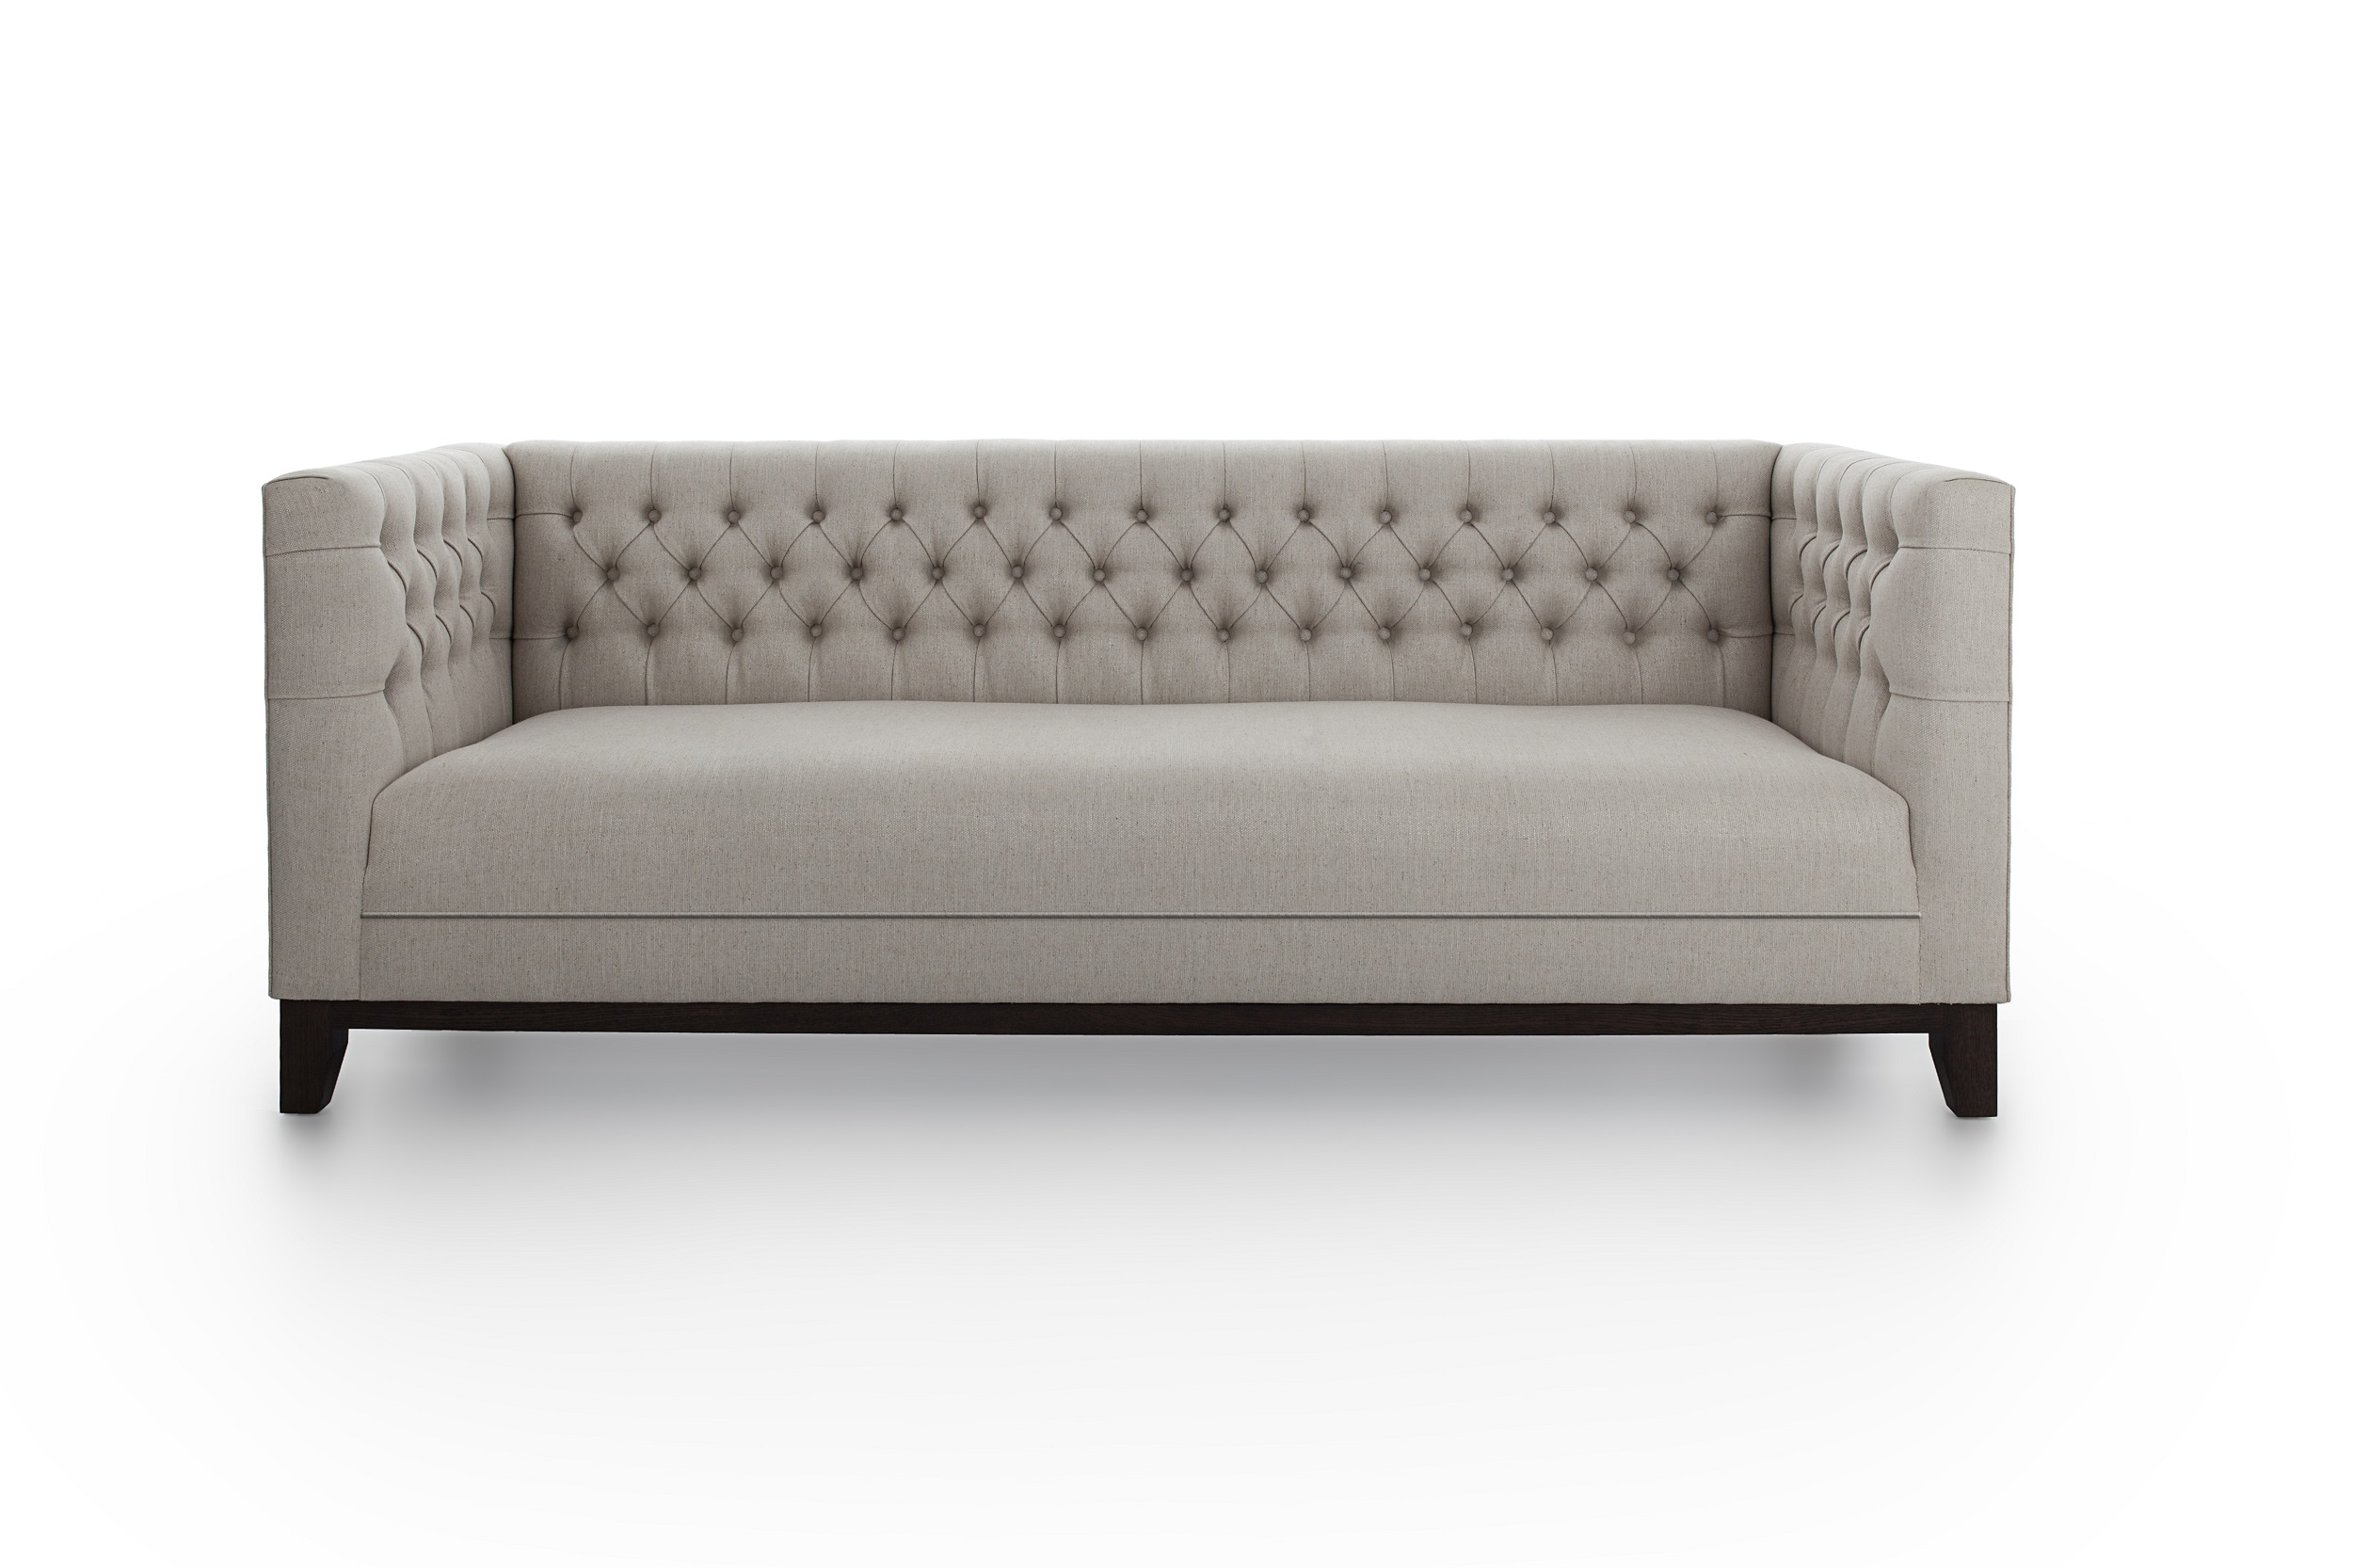 chloe velvet tufted sofa living room furniture collection highly sprung sofas 3 2 1 suite of piece suites